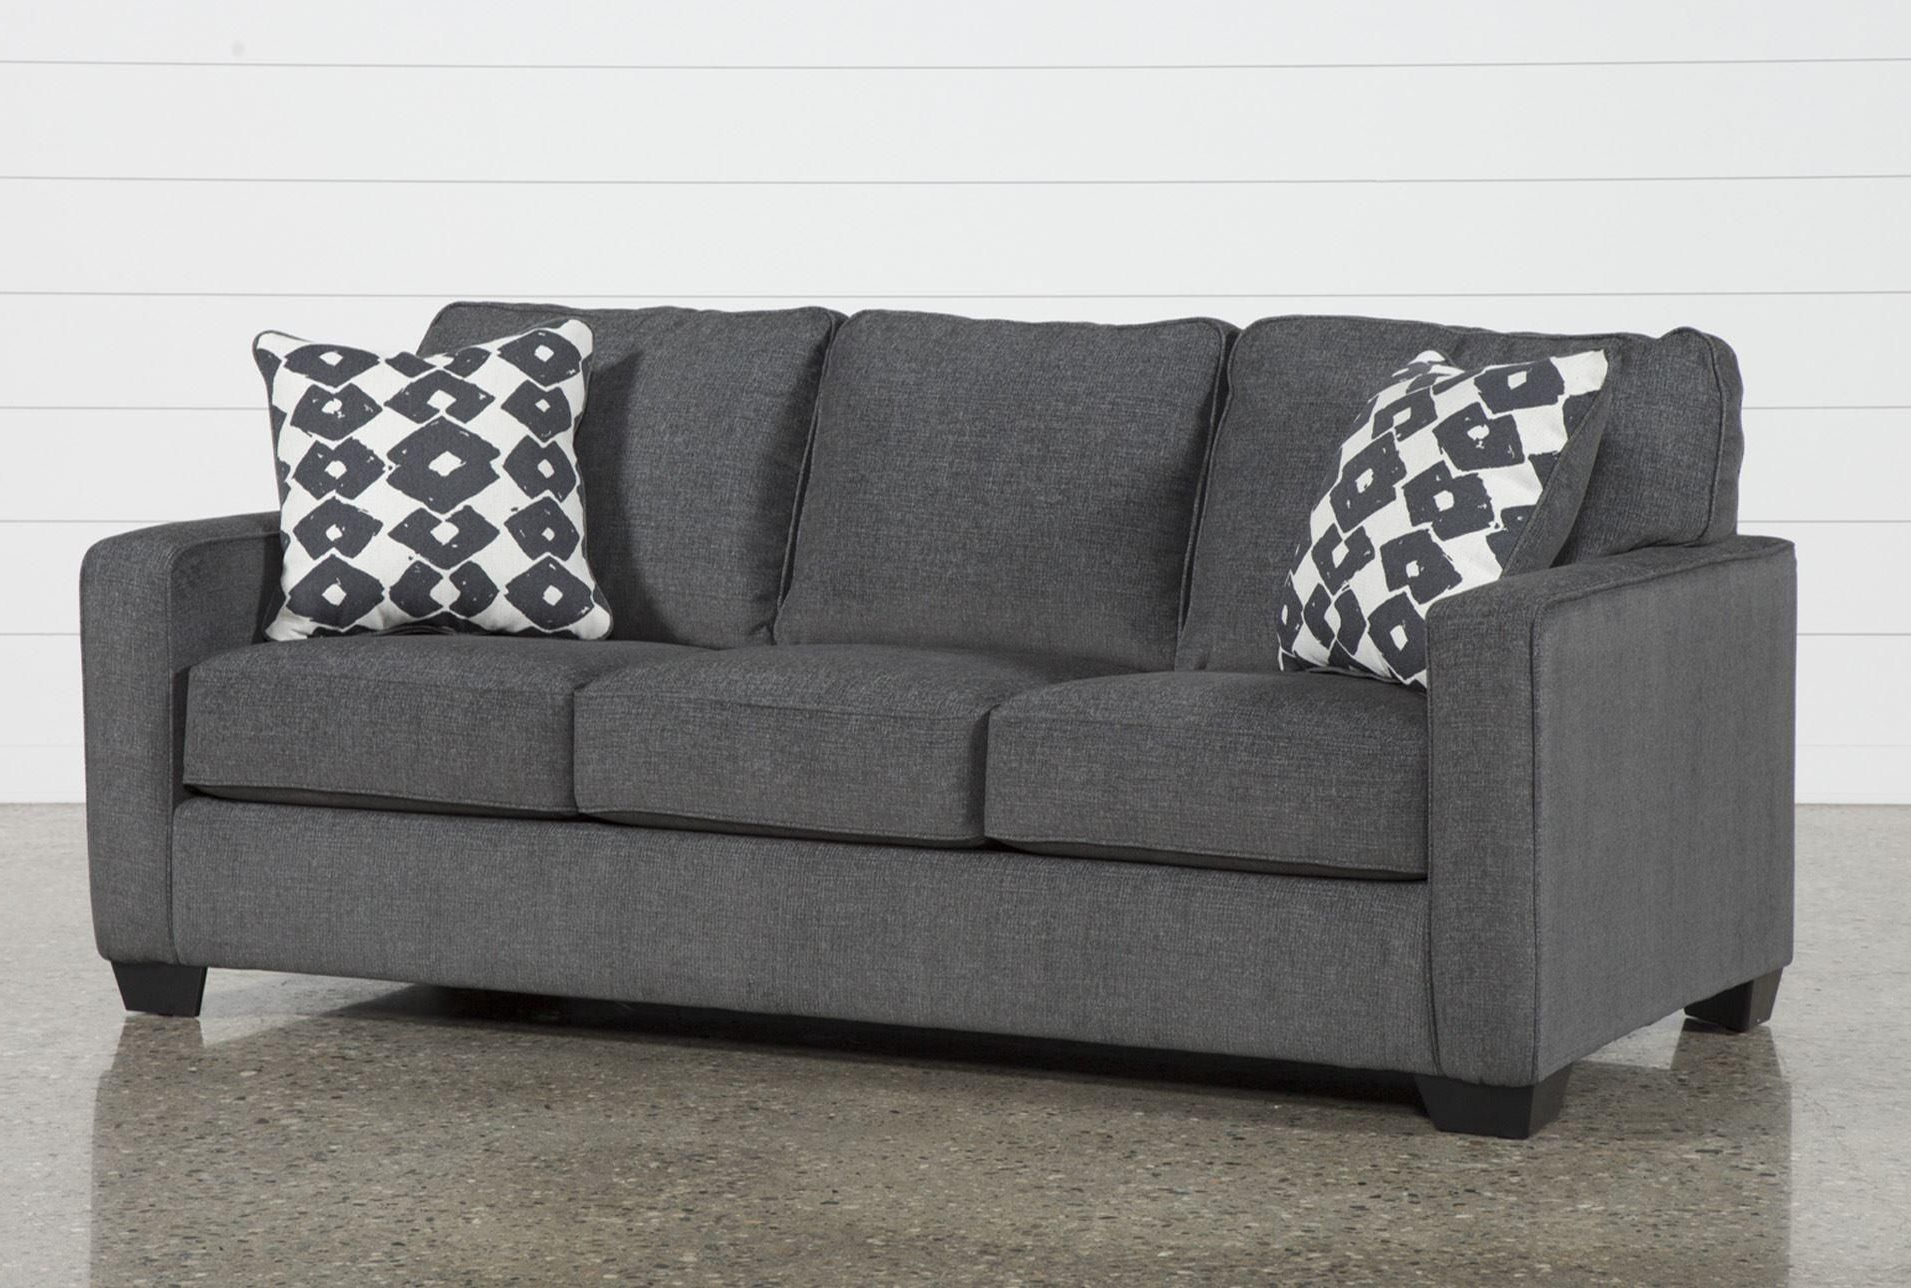 Furniture:great Replacement Sofa Cushions Exeter Also Sofa For Best And Newest Mcdade Ash Sofa Chairs (View 9 of 20)